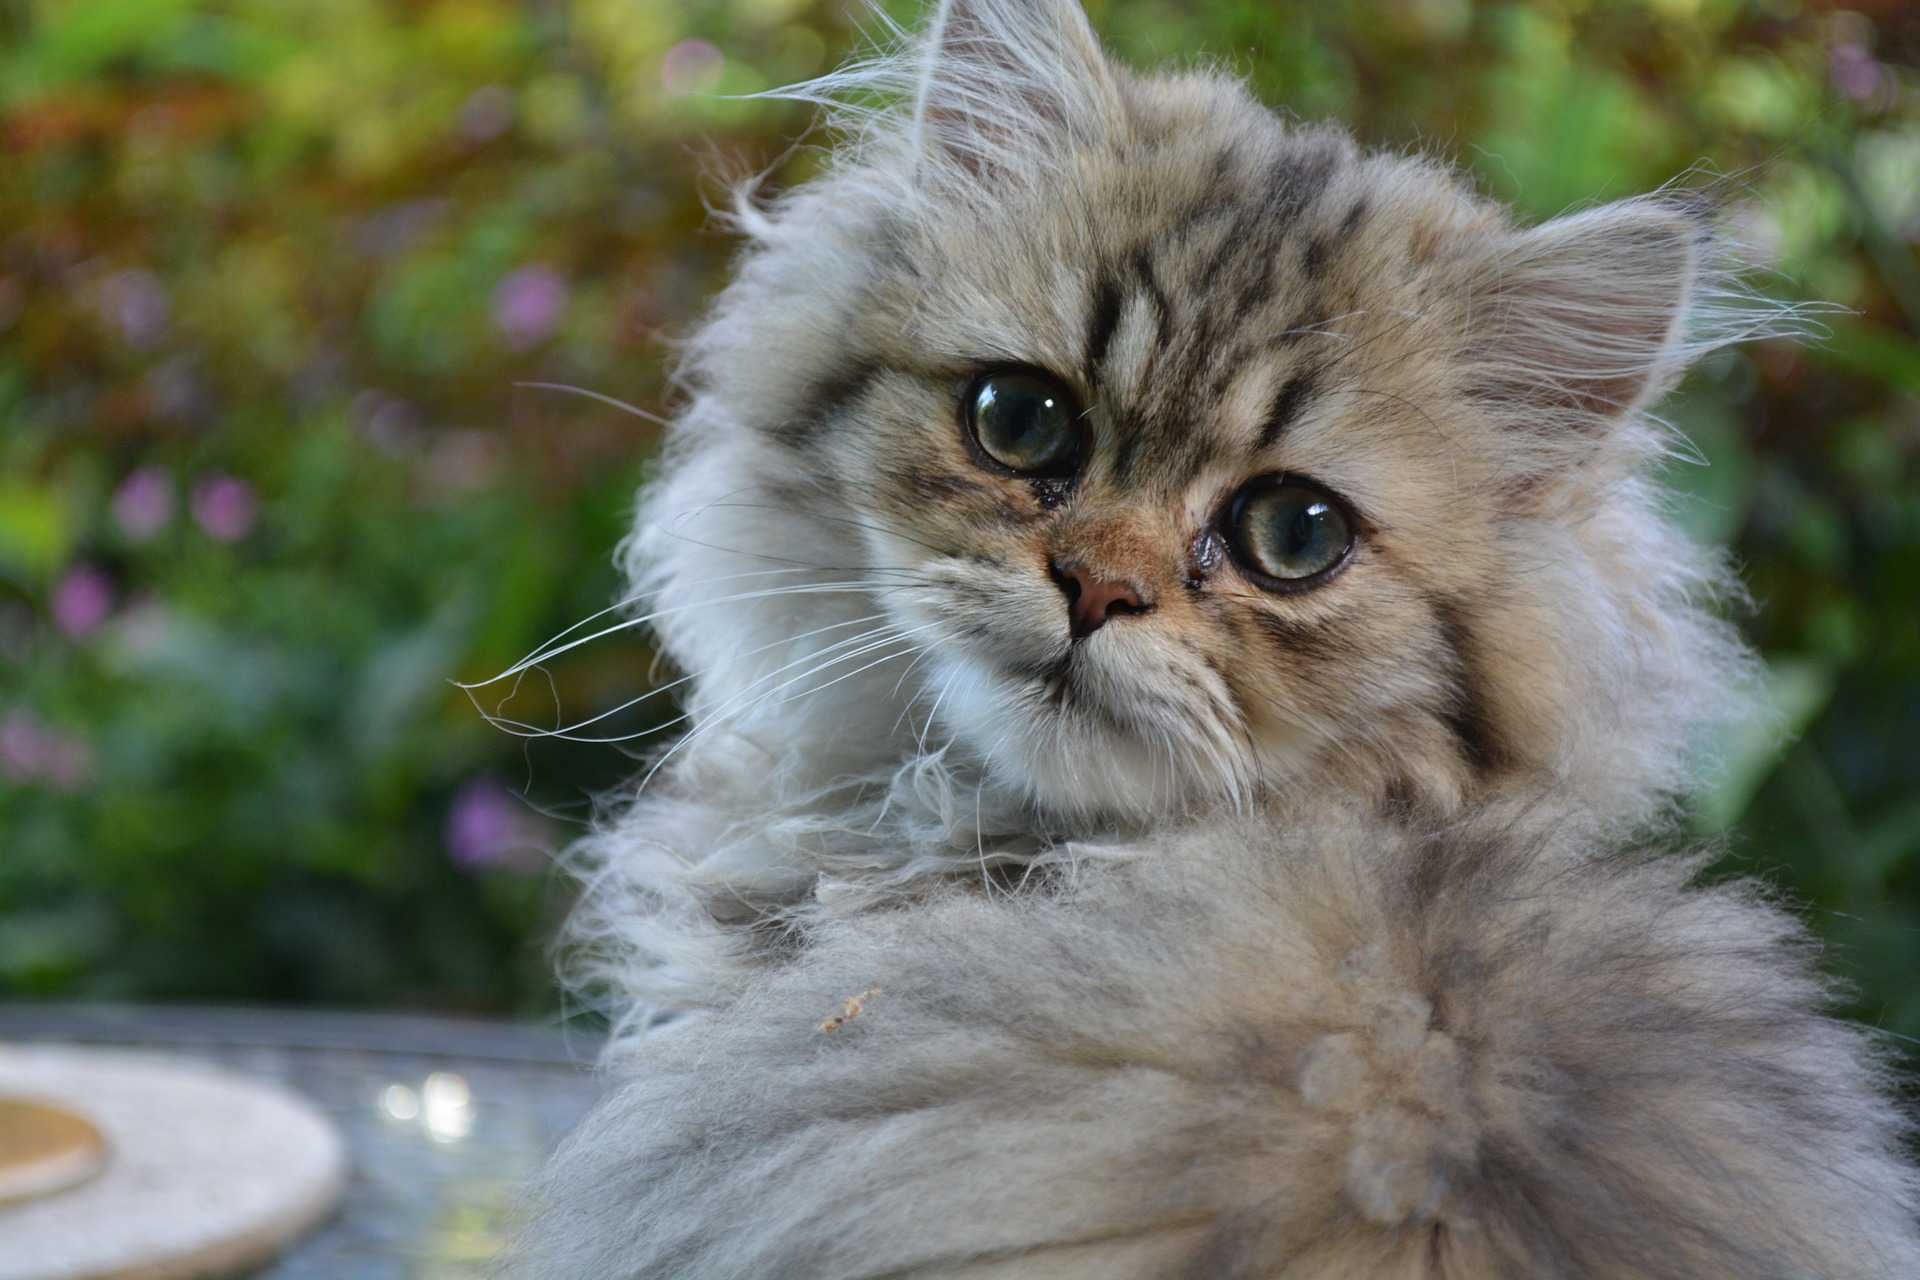 A Persian kitten looking into the camera.